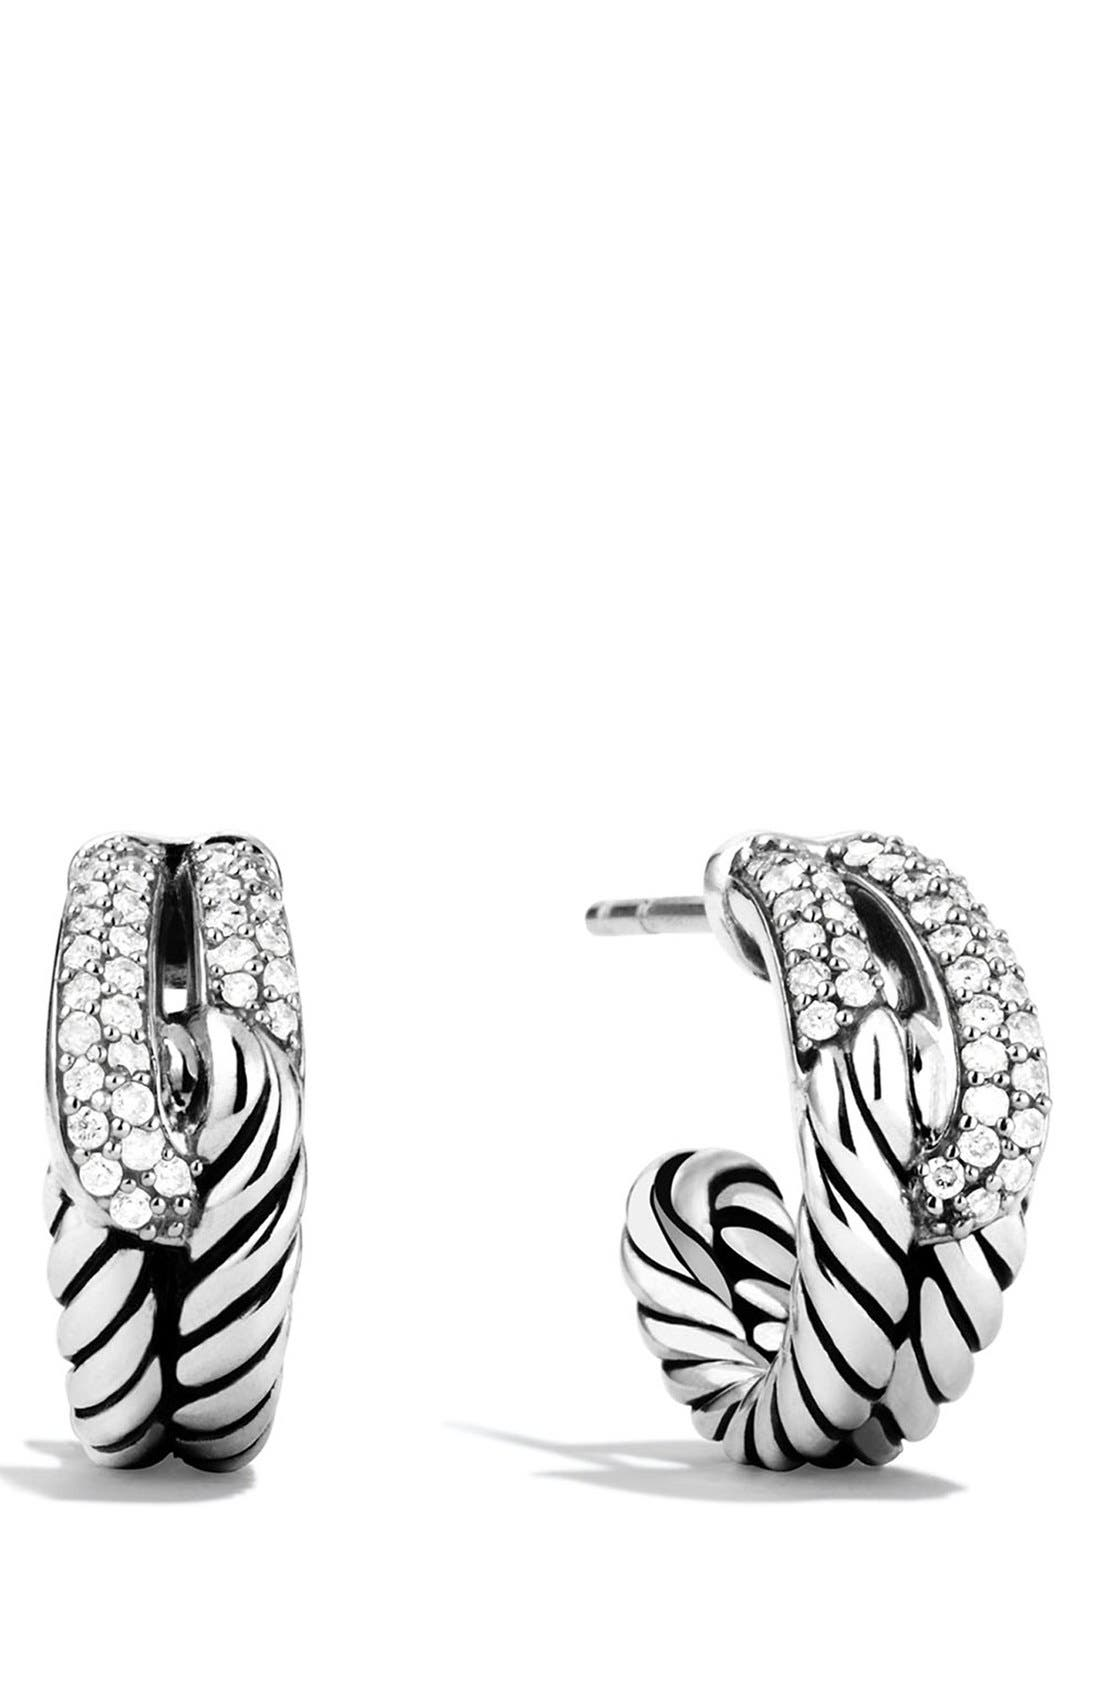 Main Image - David Yurman 'Labyrinth' Single Loop Earrings with Diamonds